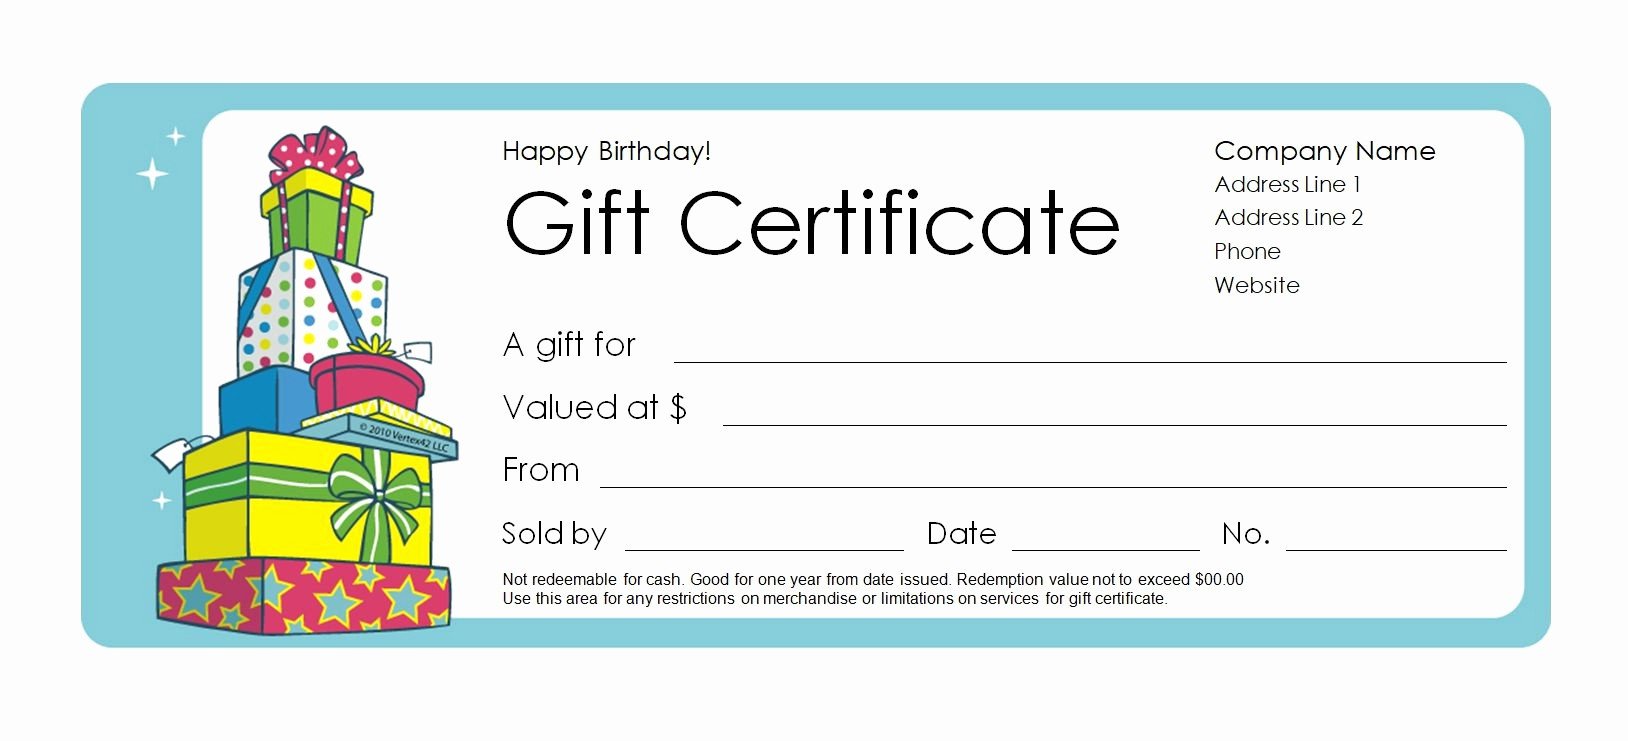 Make Up Gift Certificate Template Best Of 173 Free Gift Certificate Templates You Can Customize